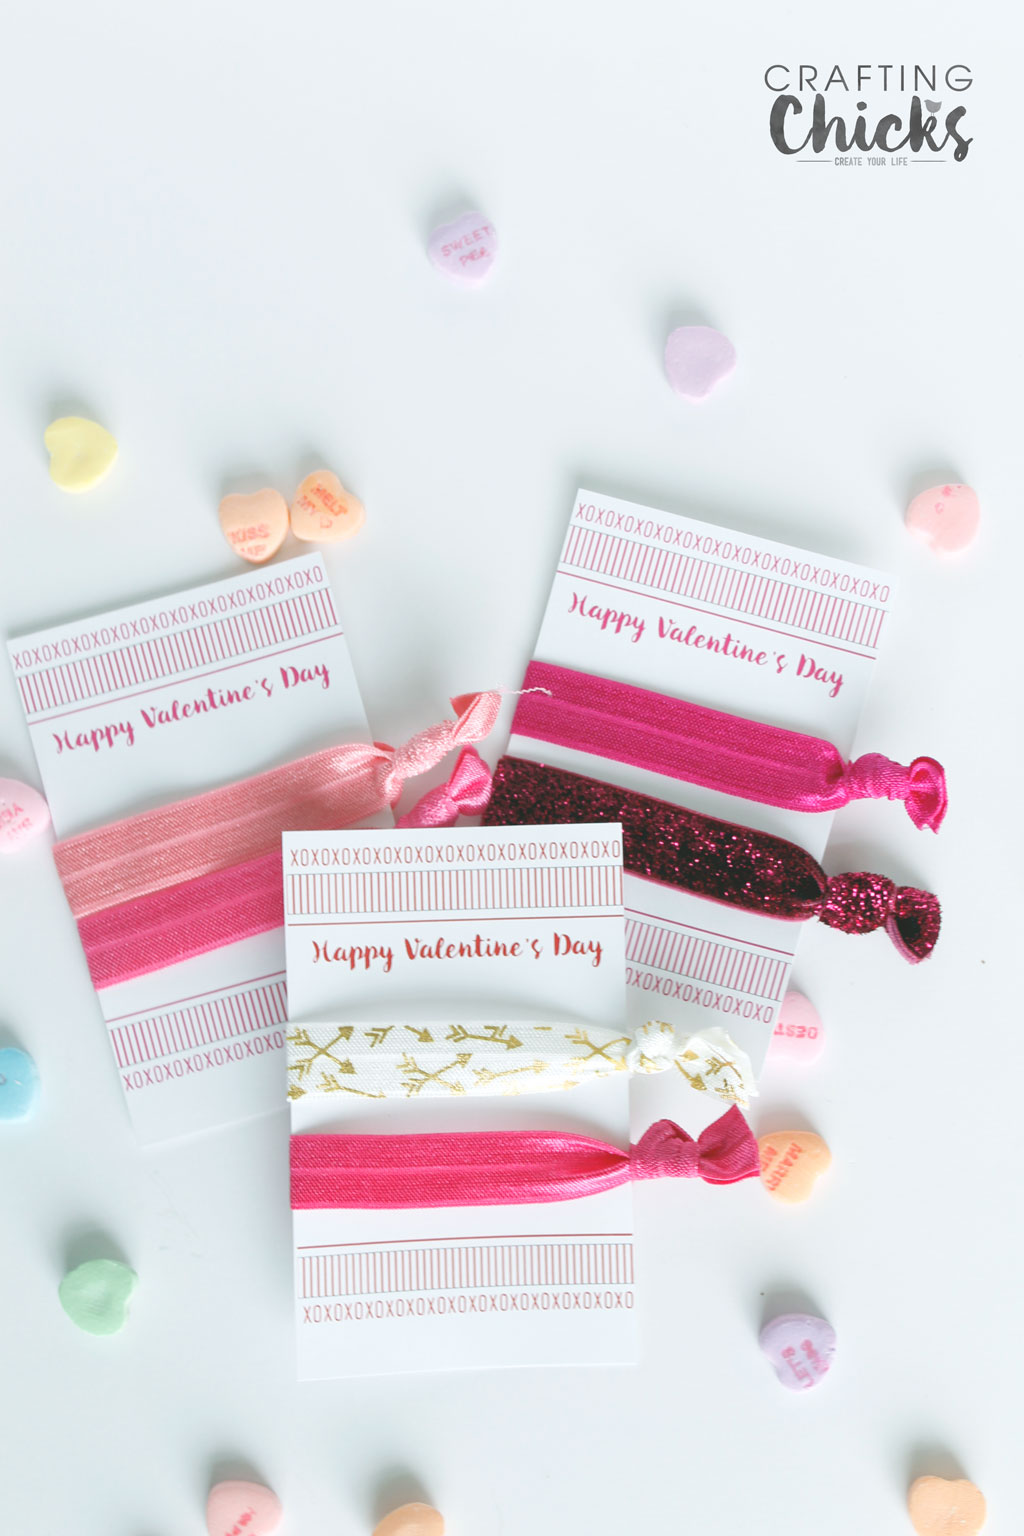 Valentine Elastic Hair Tie Cards are a homemade gift friends will for sure use. Just use this printable and make the hair ties and you're all set.